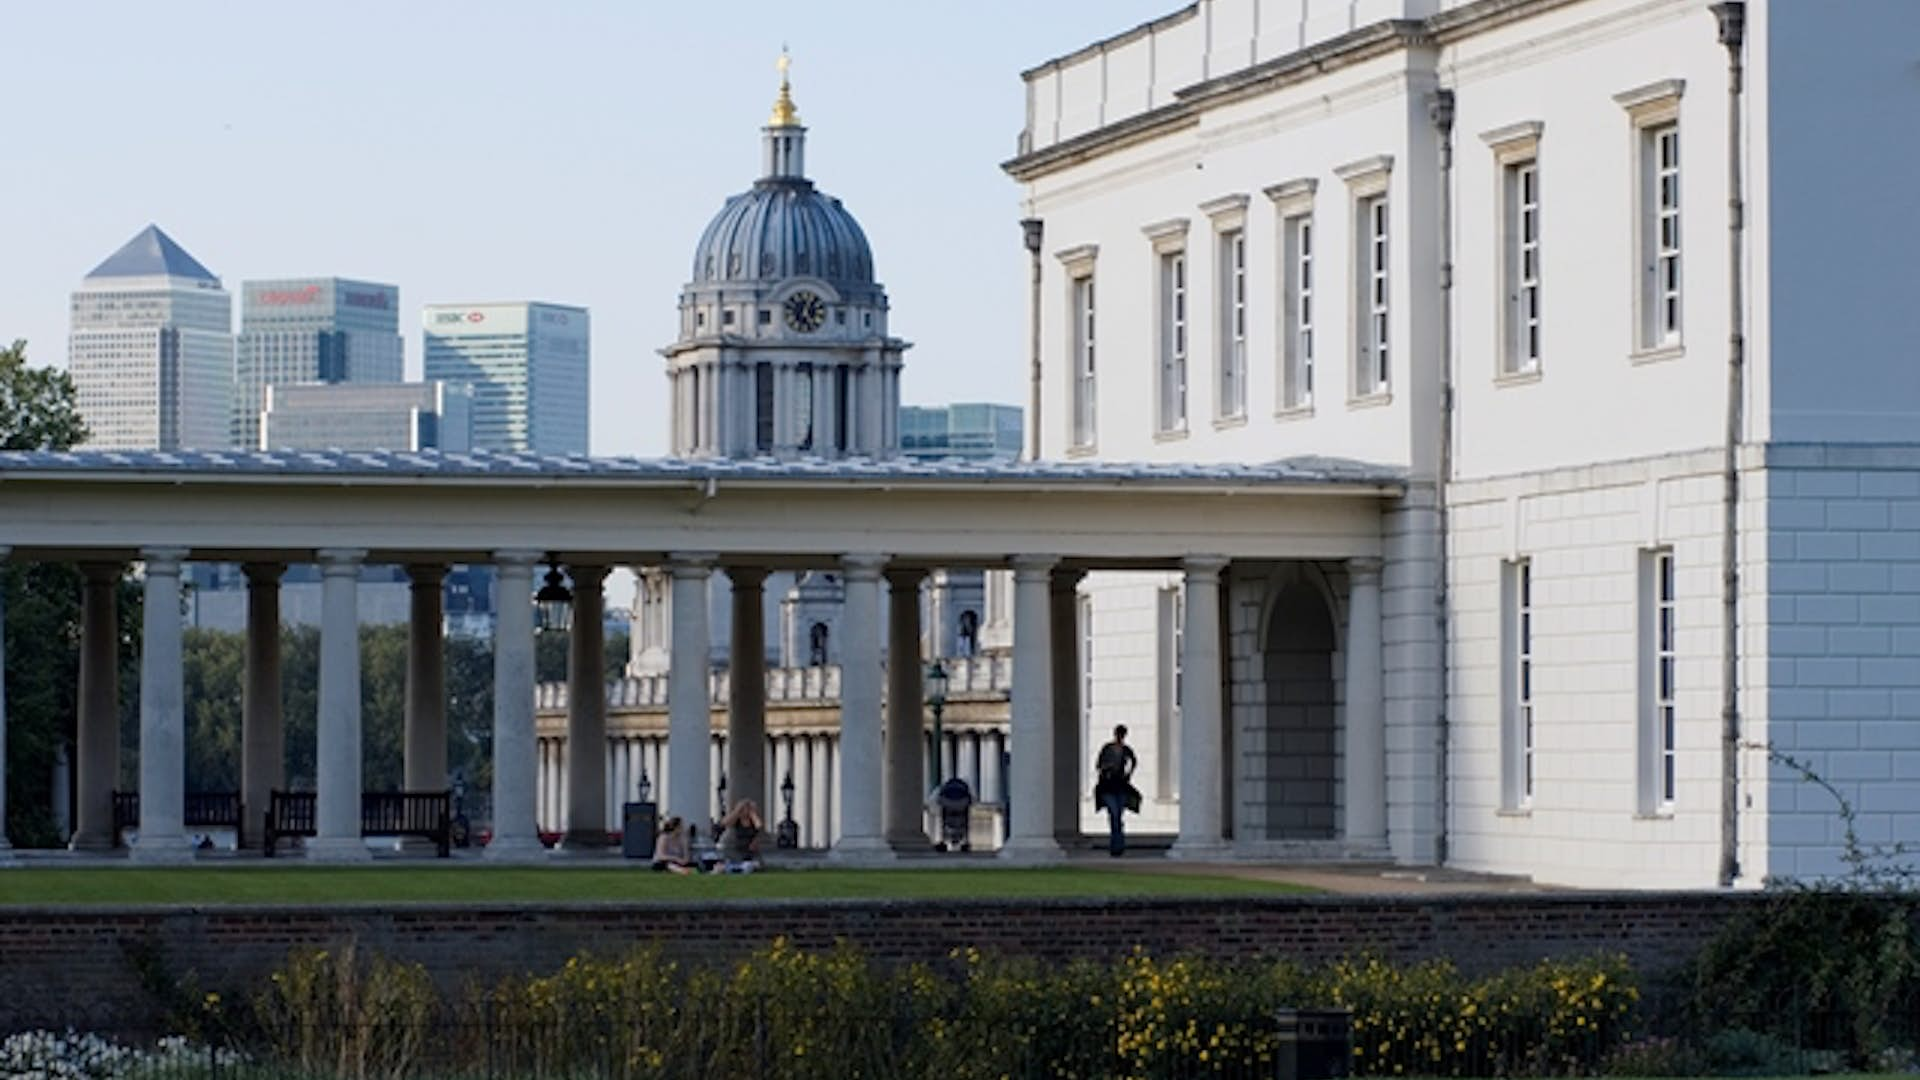 Colonnades at National Maritime Museum